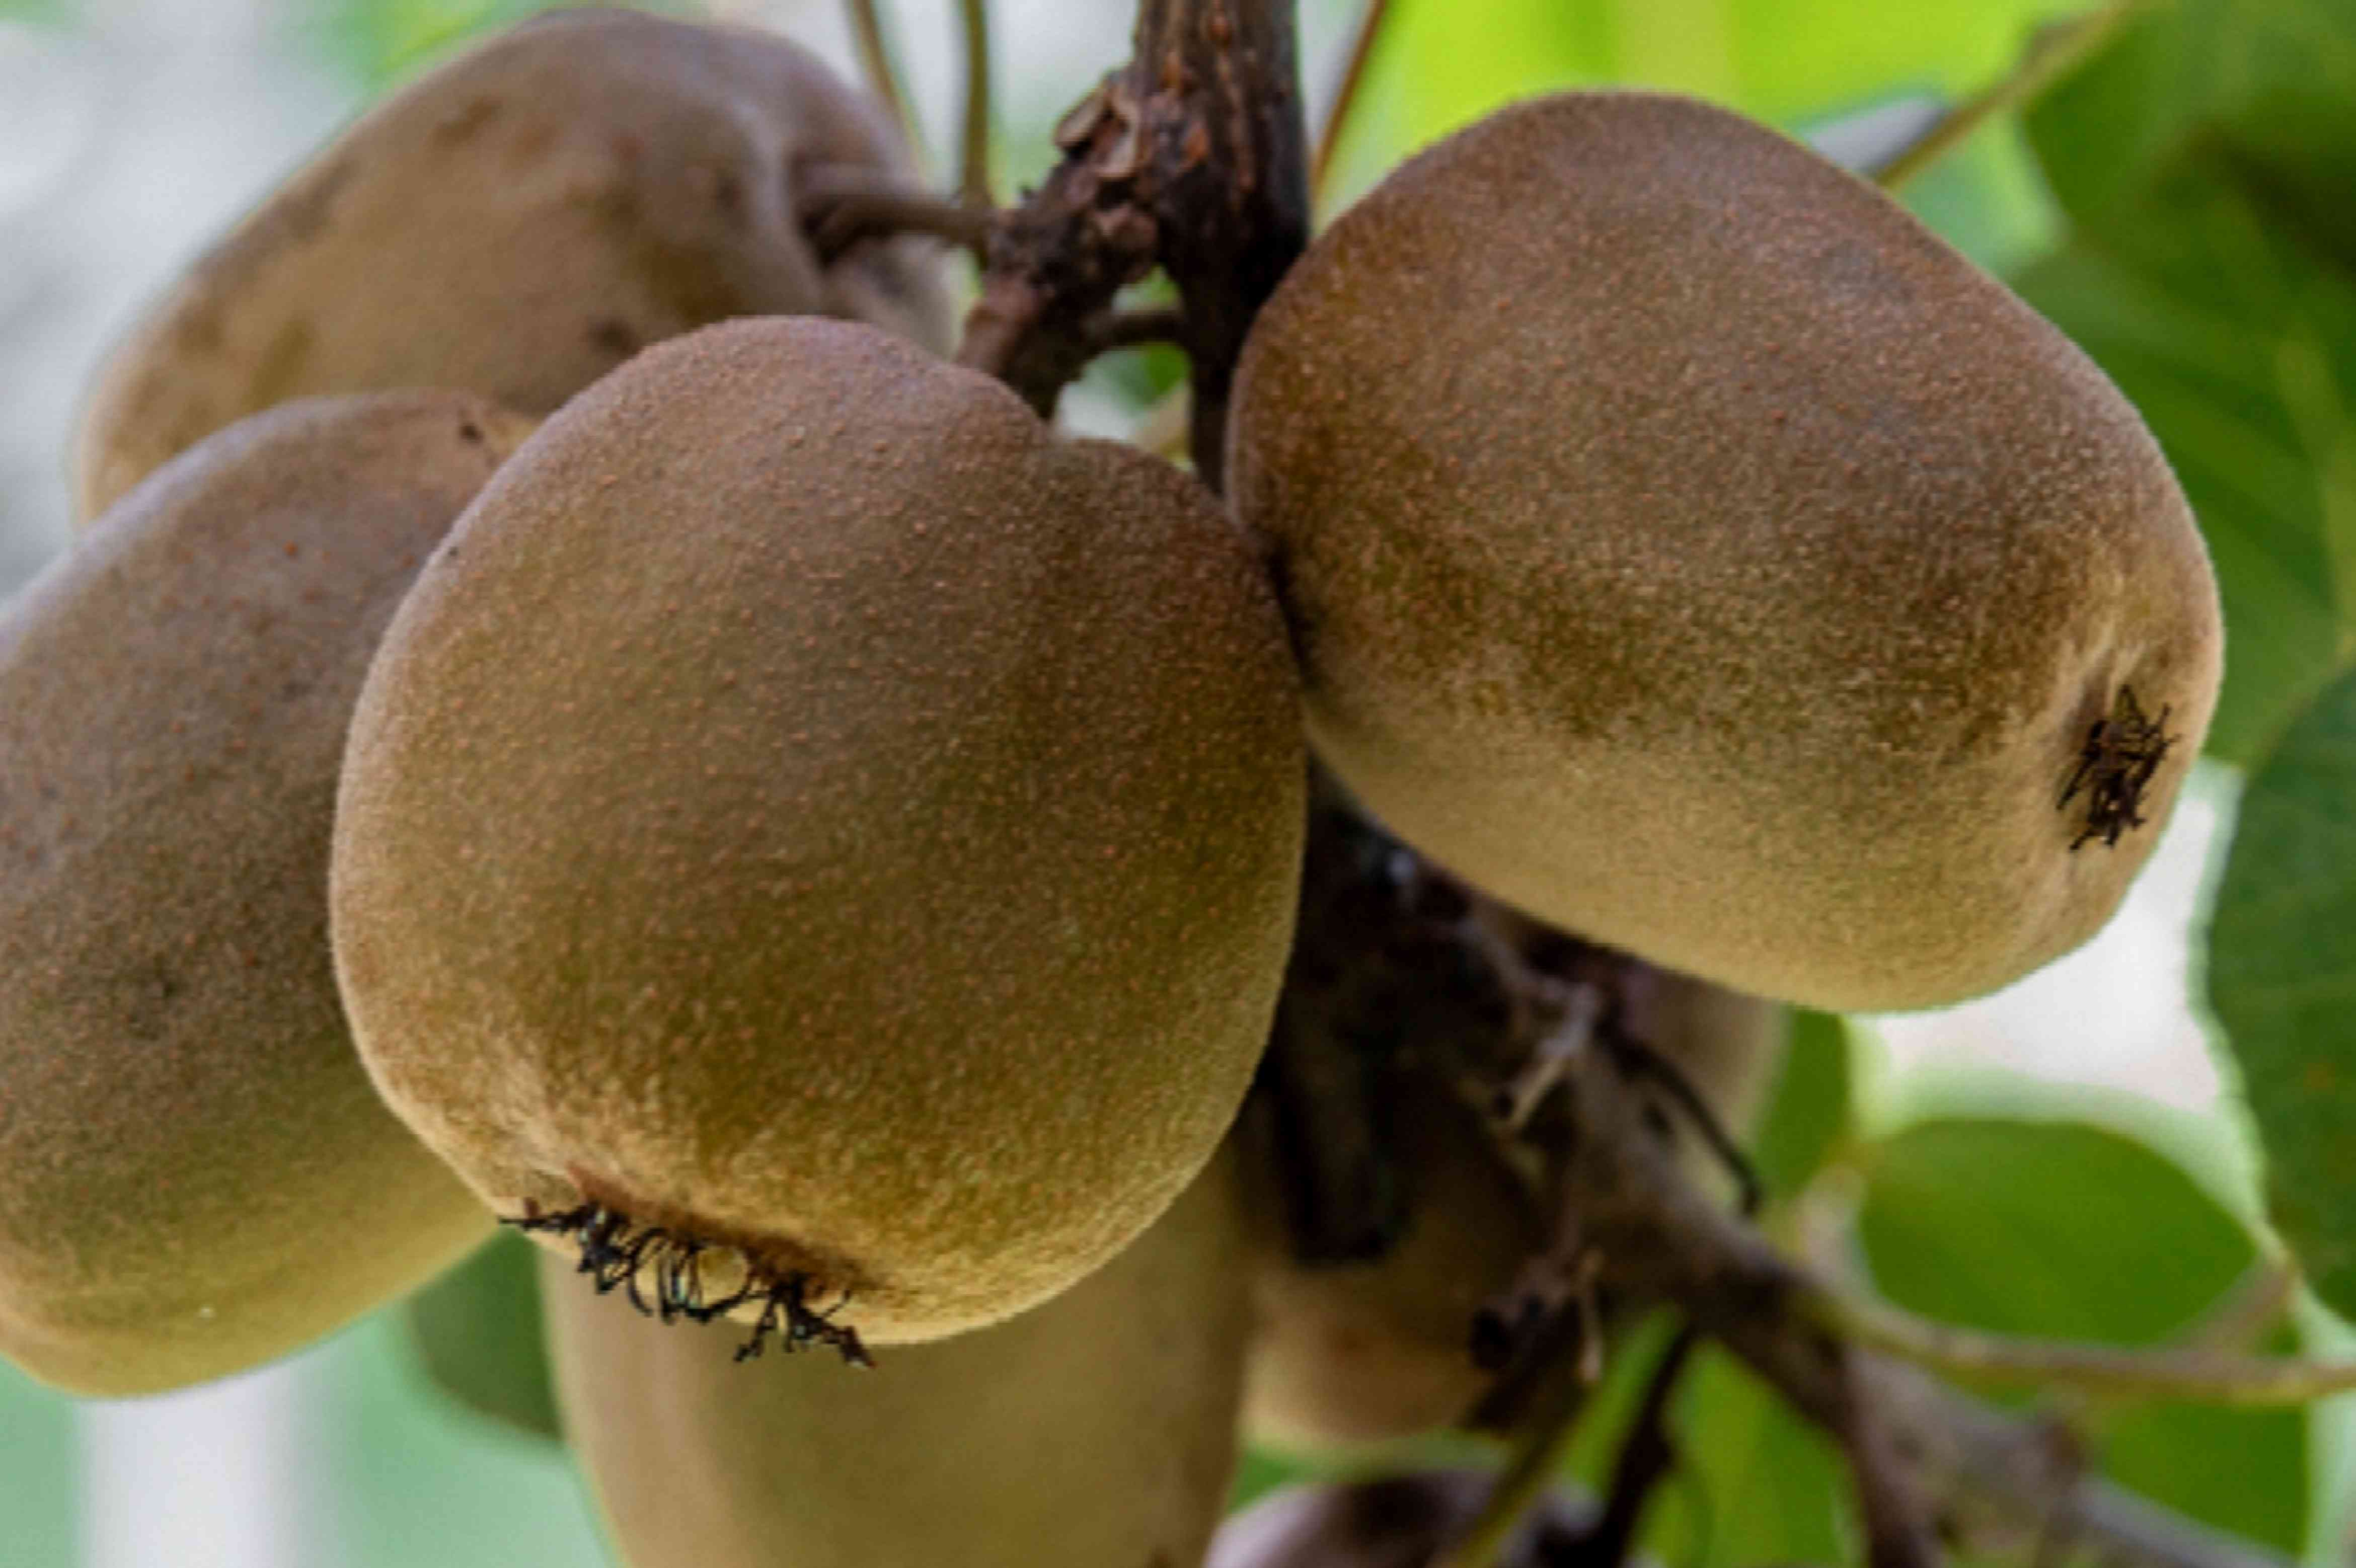 Brown egg-shaped kiwifruit hanging on stem with fuzzy skin closeup